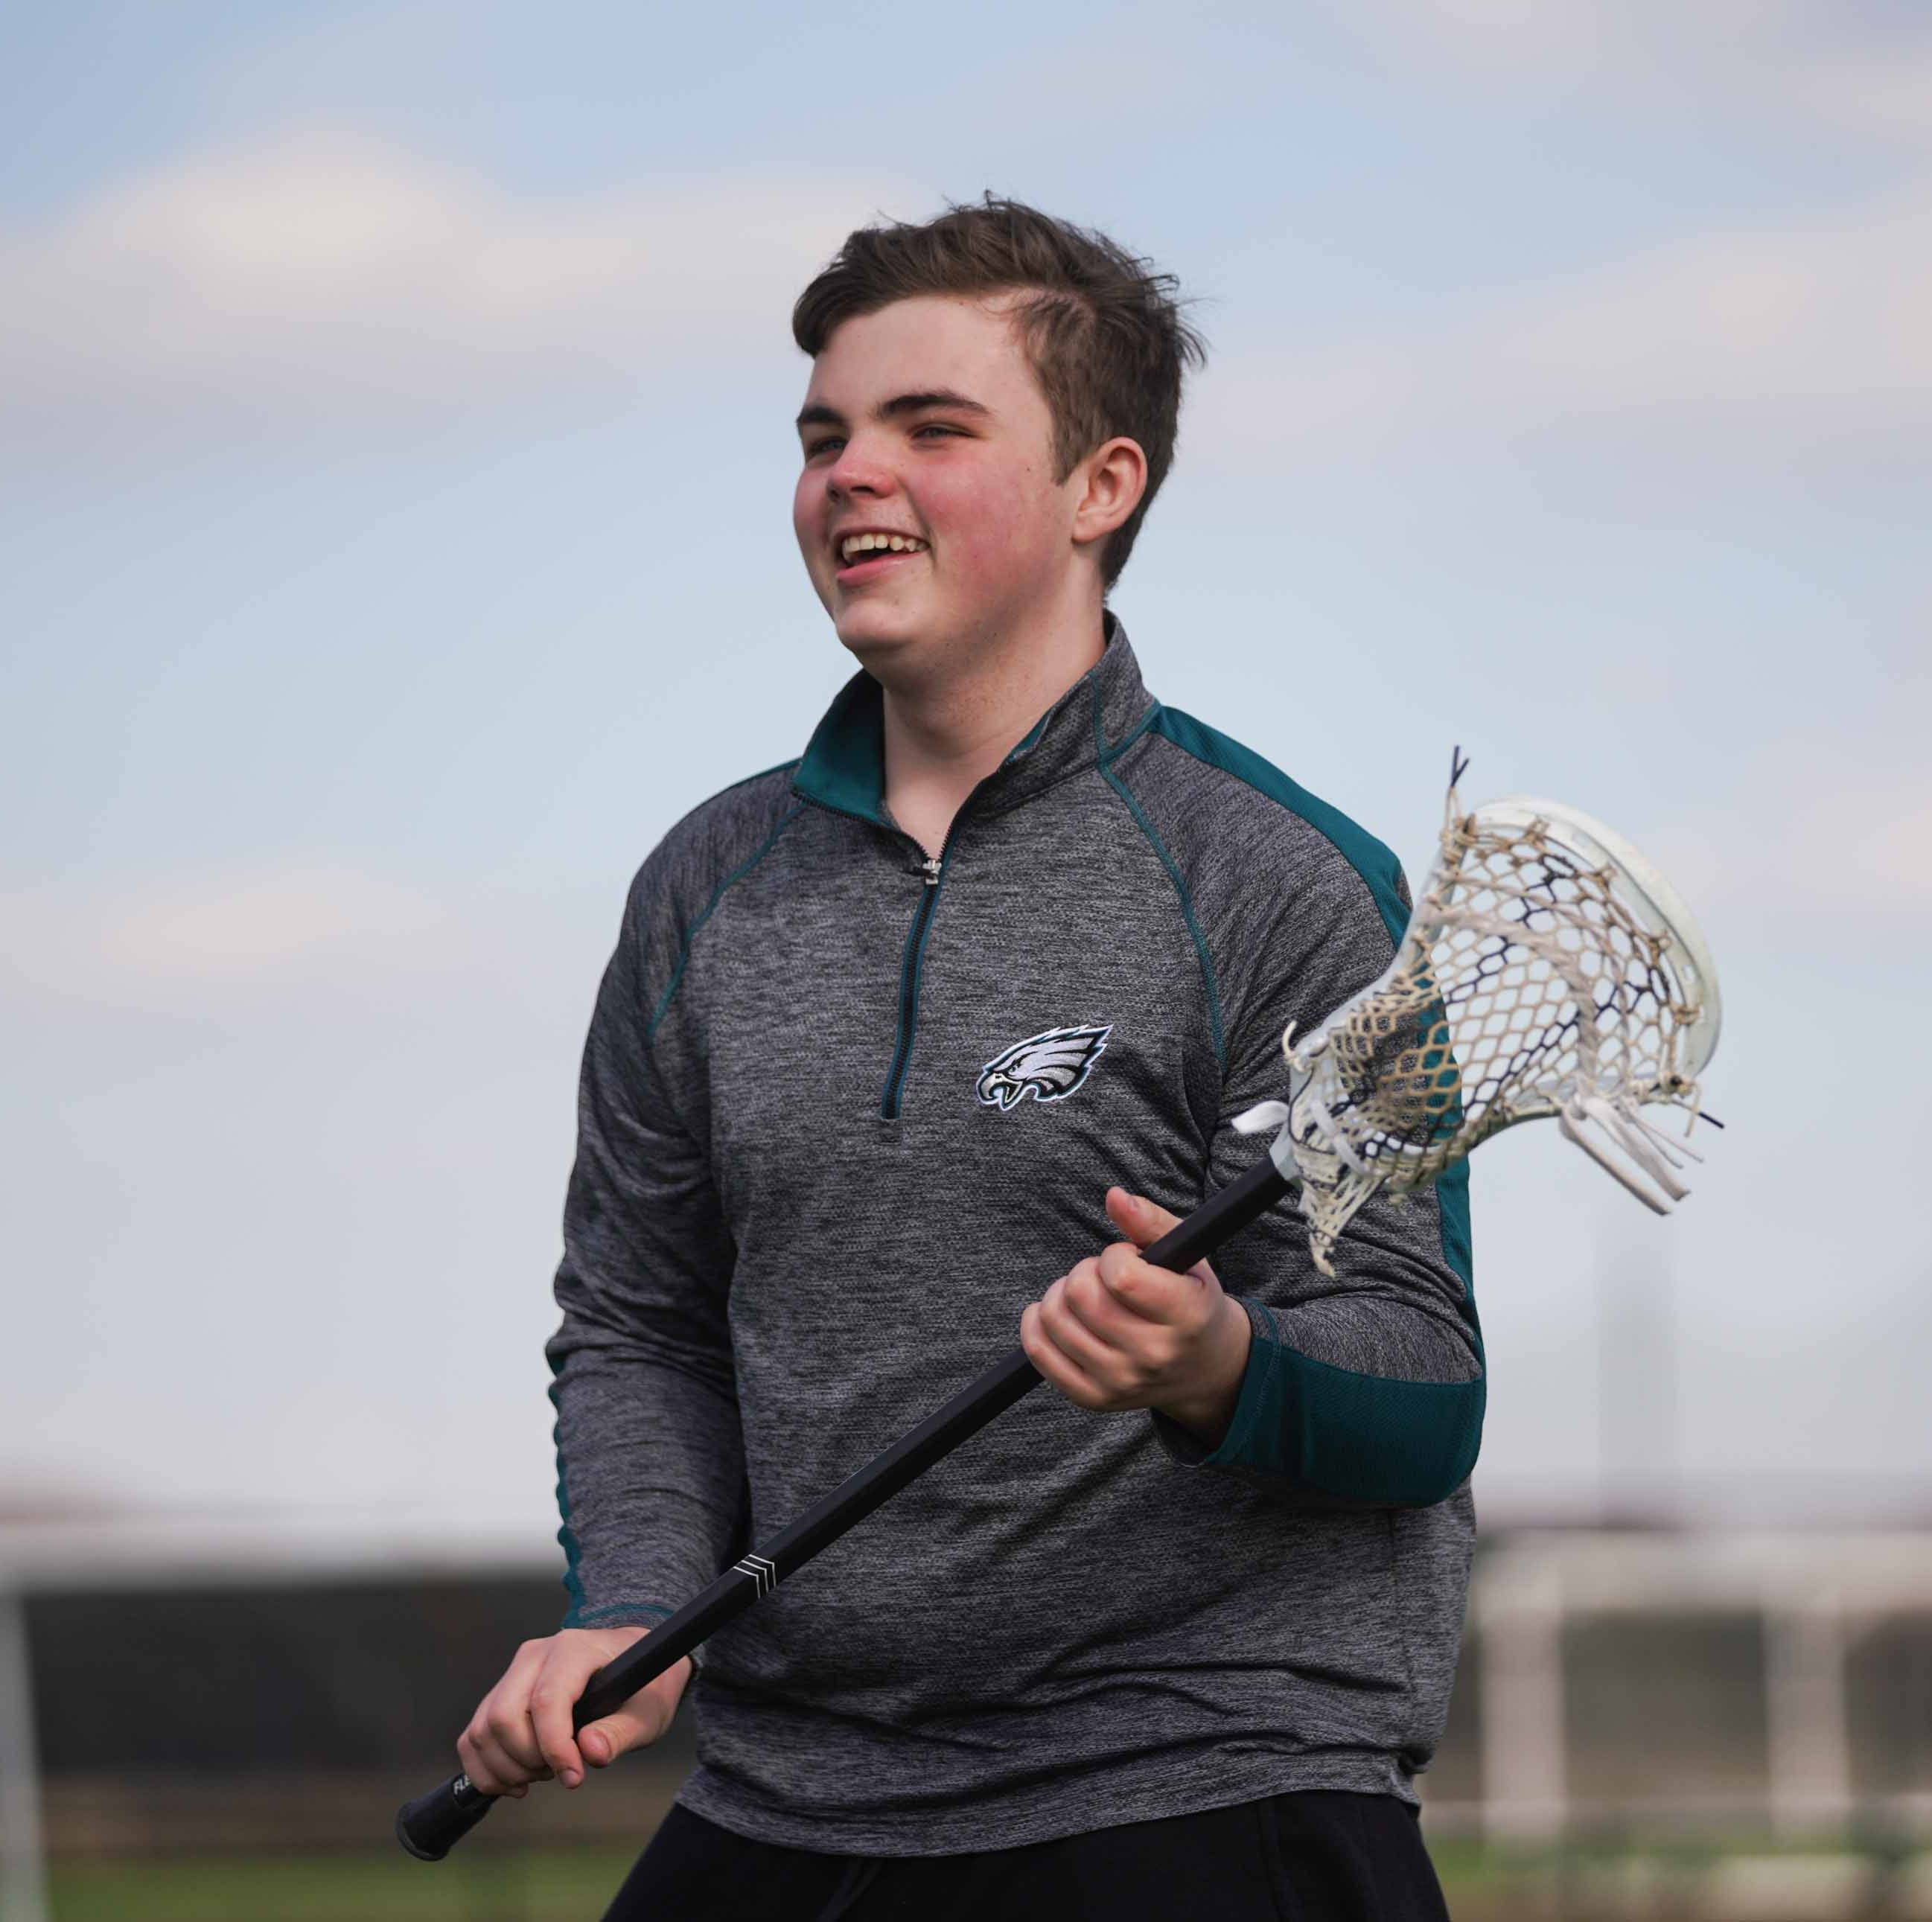 Delaware lacrosse player can't play because no approved helmet fits him